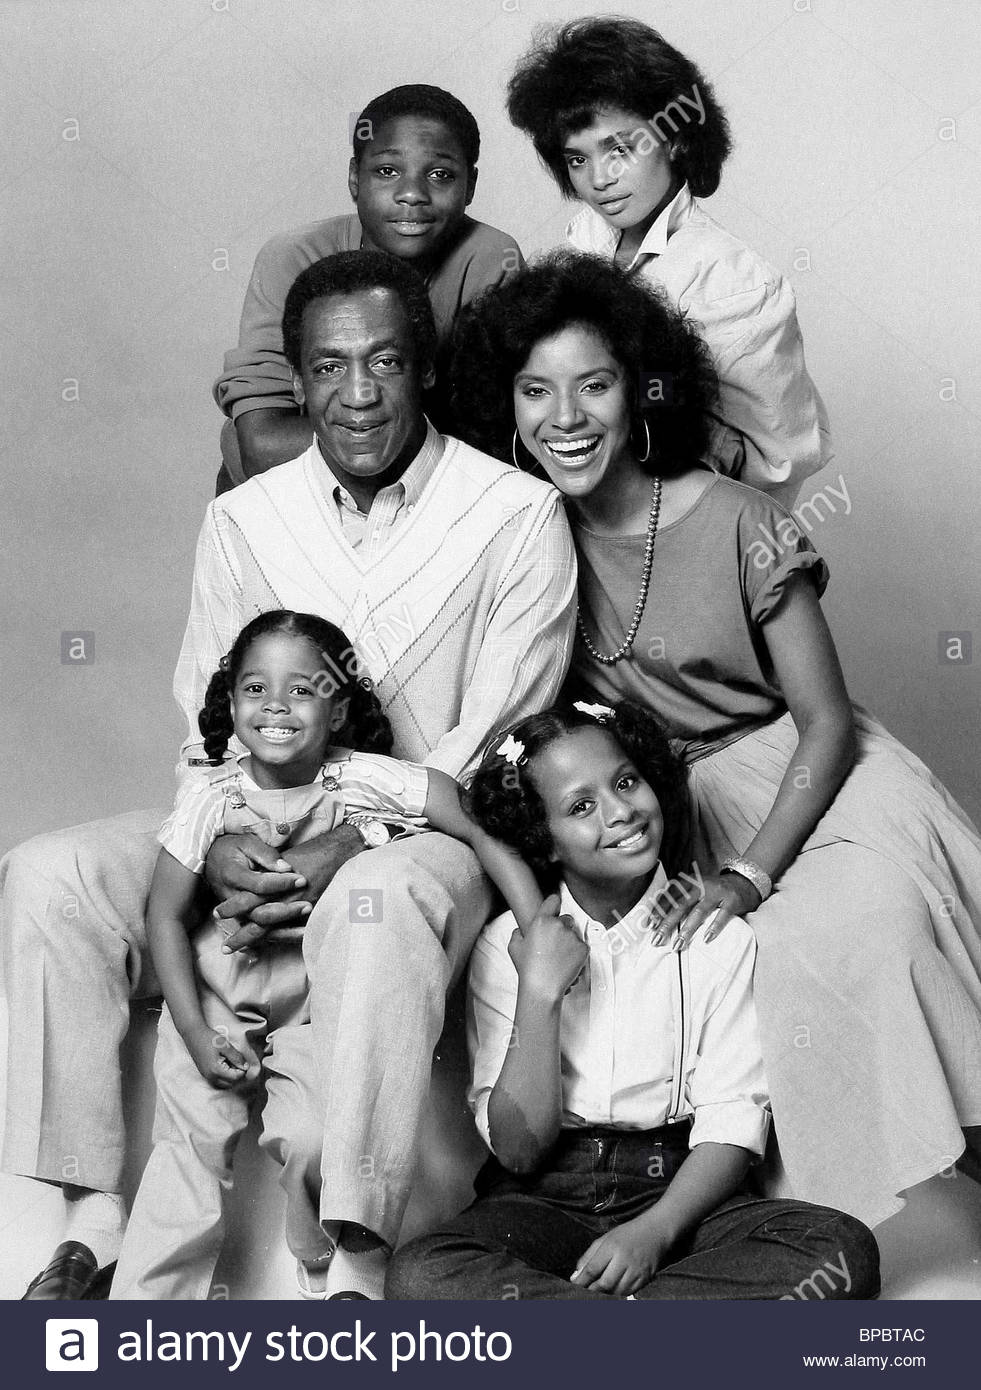 BILL COSBY et Phylicia Rashad MALCOLM-JAMAL WARNER LISA BONET TEMPESTT BLEDSOE KESHIA KNIGHT PULLIAM The Cosby Show Photo Stock